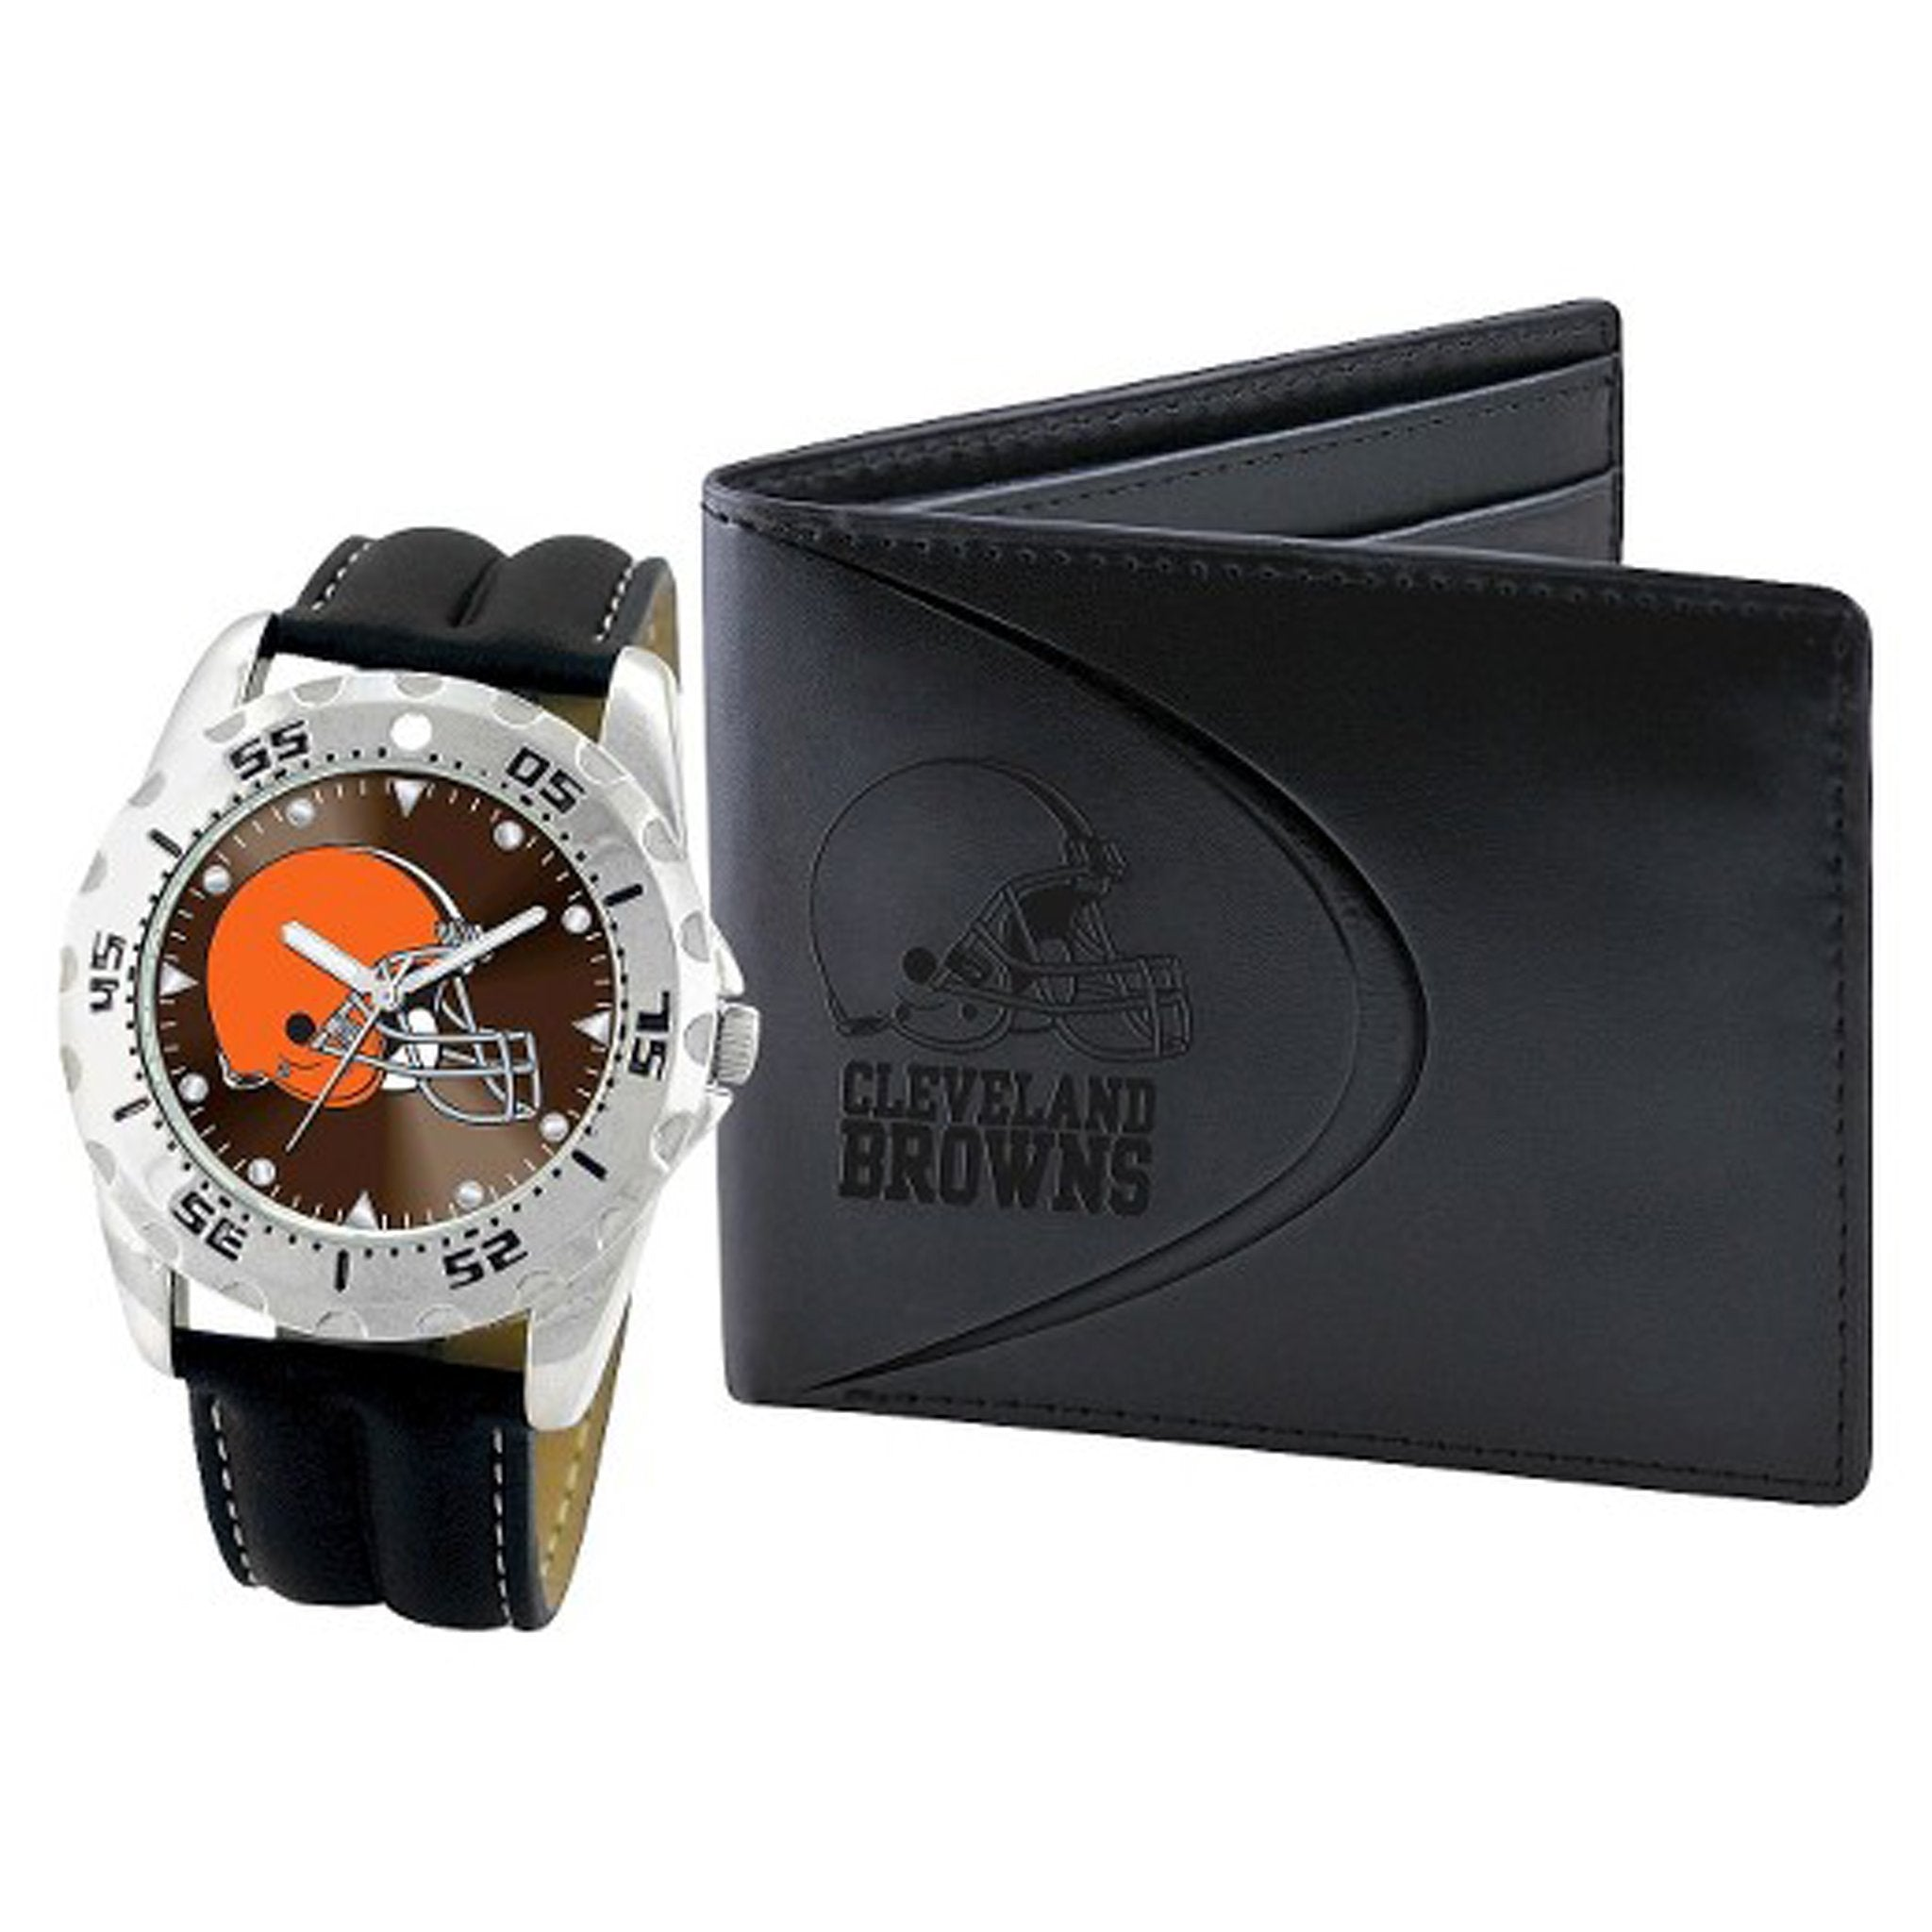 NFL Cleveland Browns Men's Watch & Wallet Set